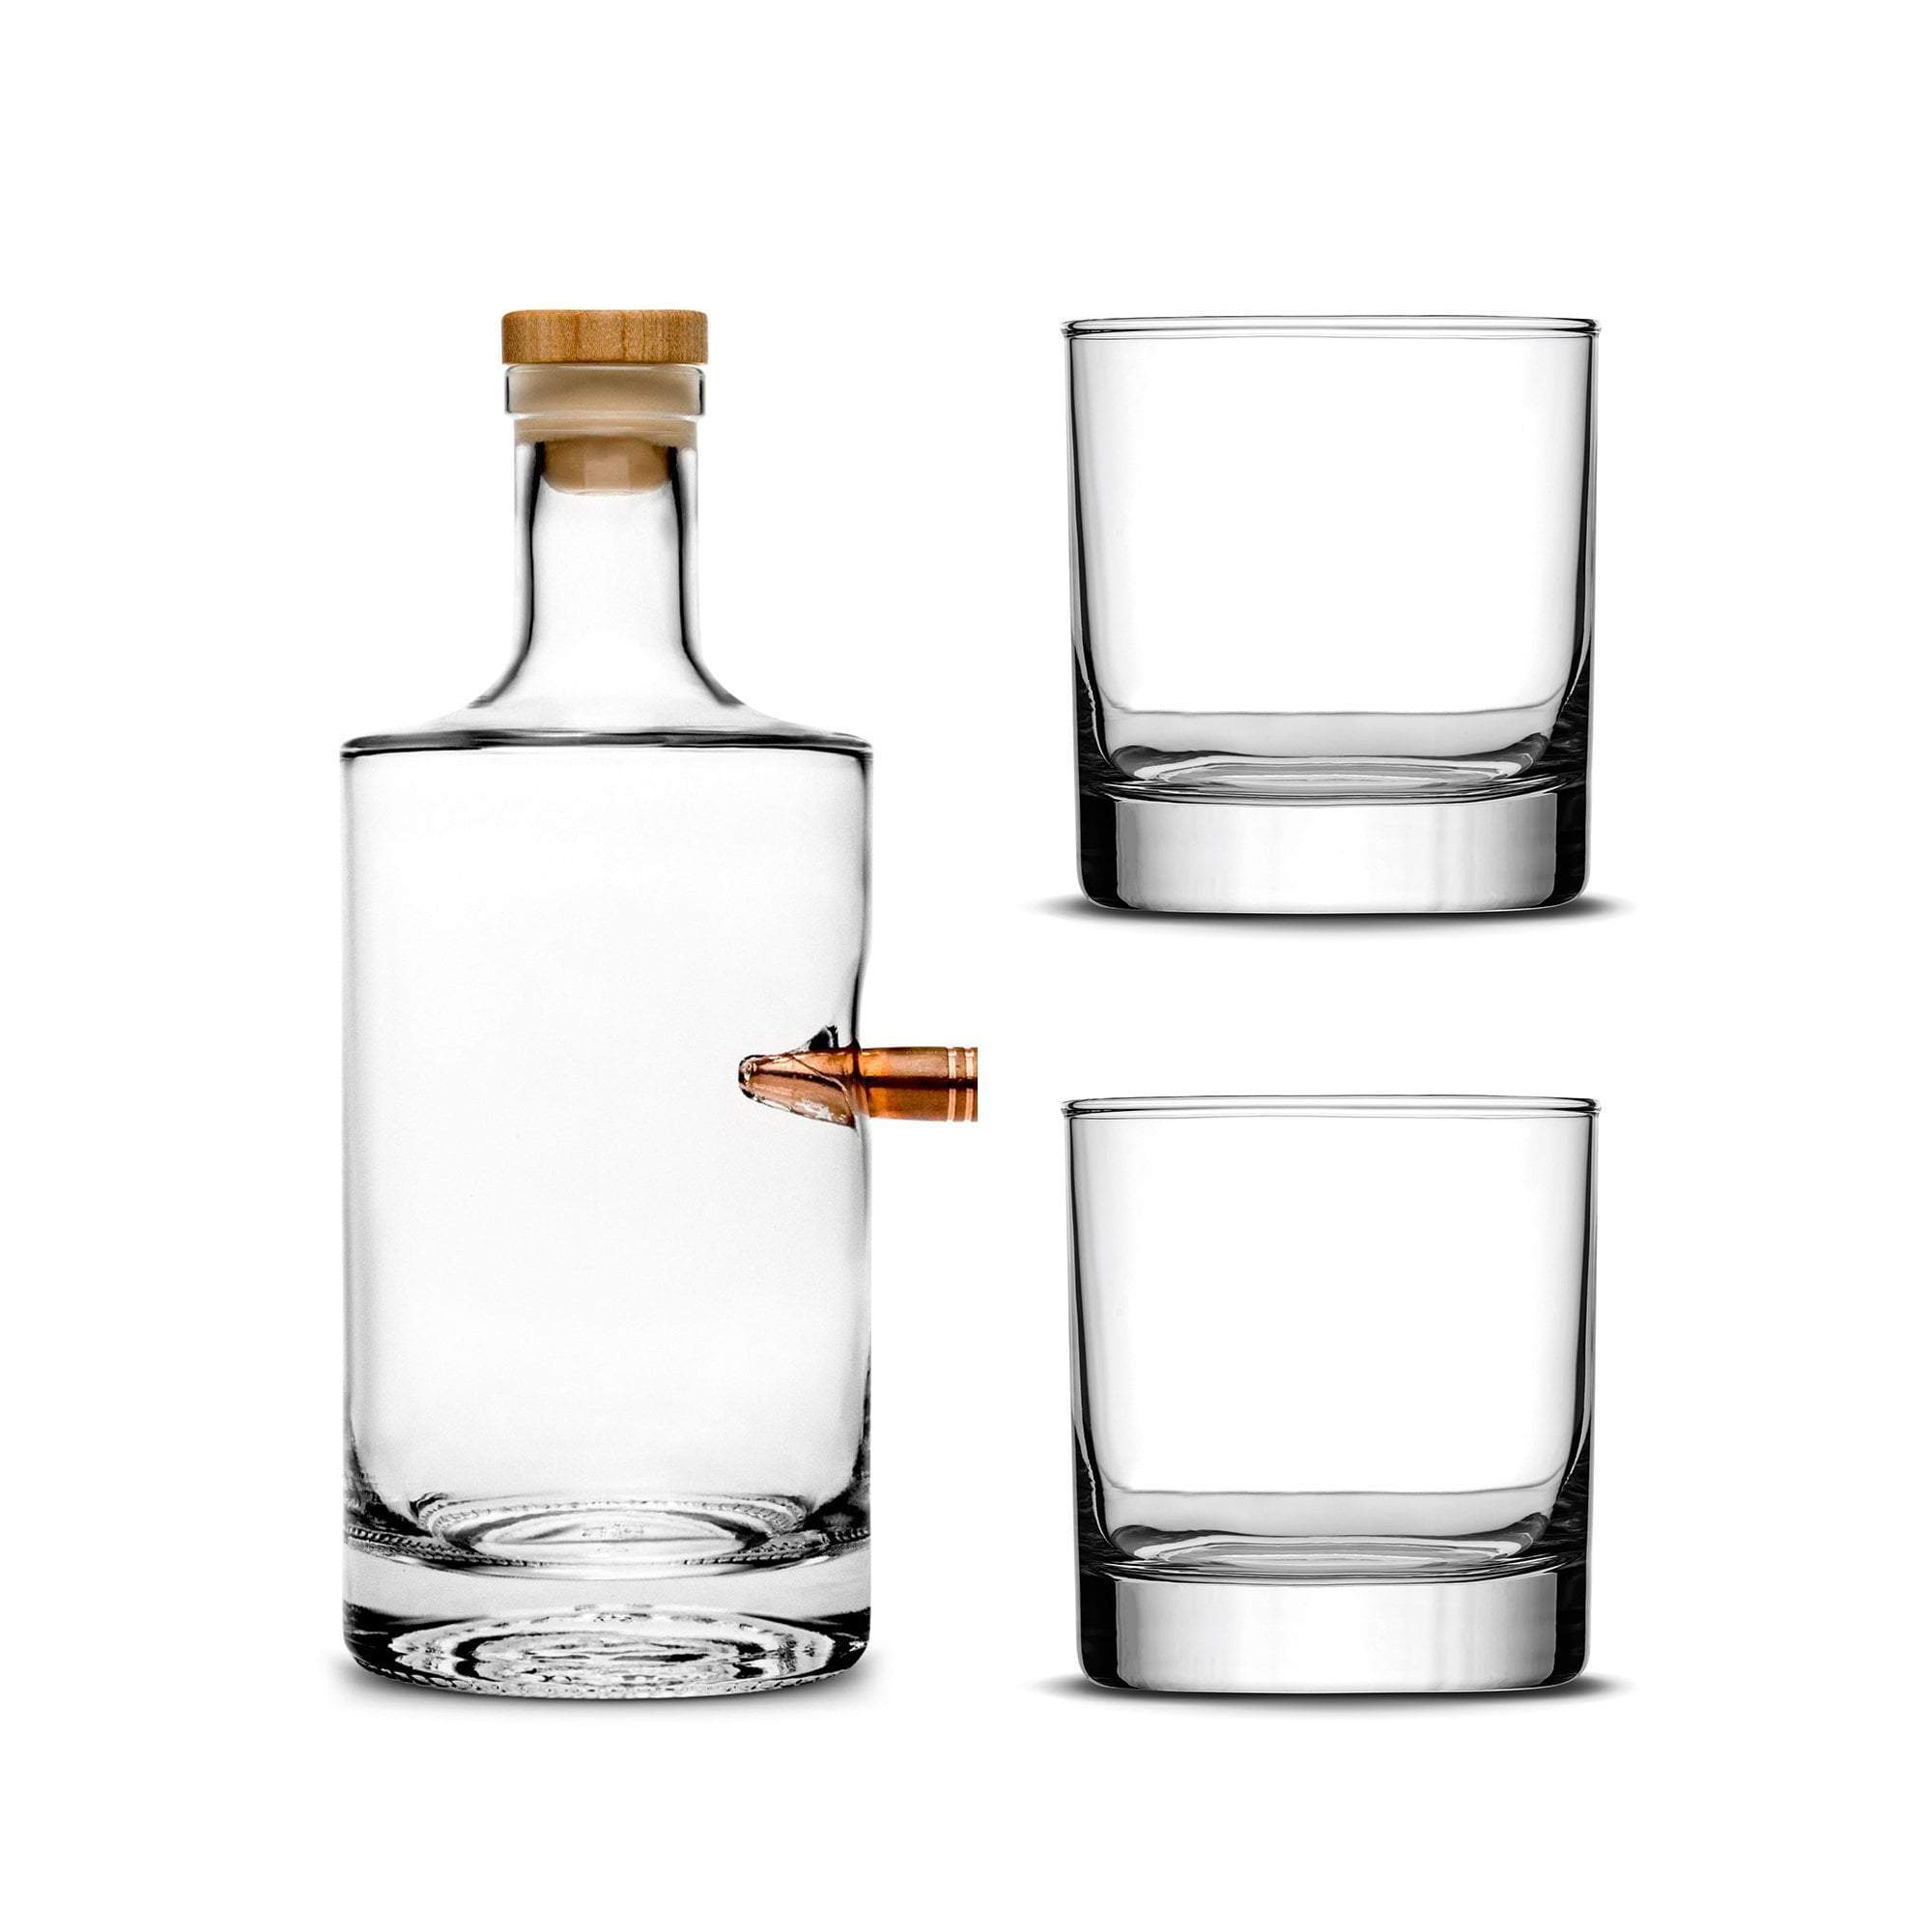 Custom Etched Refillable  50 Cal Jersey Bottle with Set of 2 Custom Whiskey  Glasses